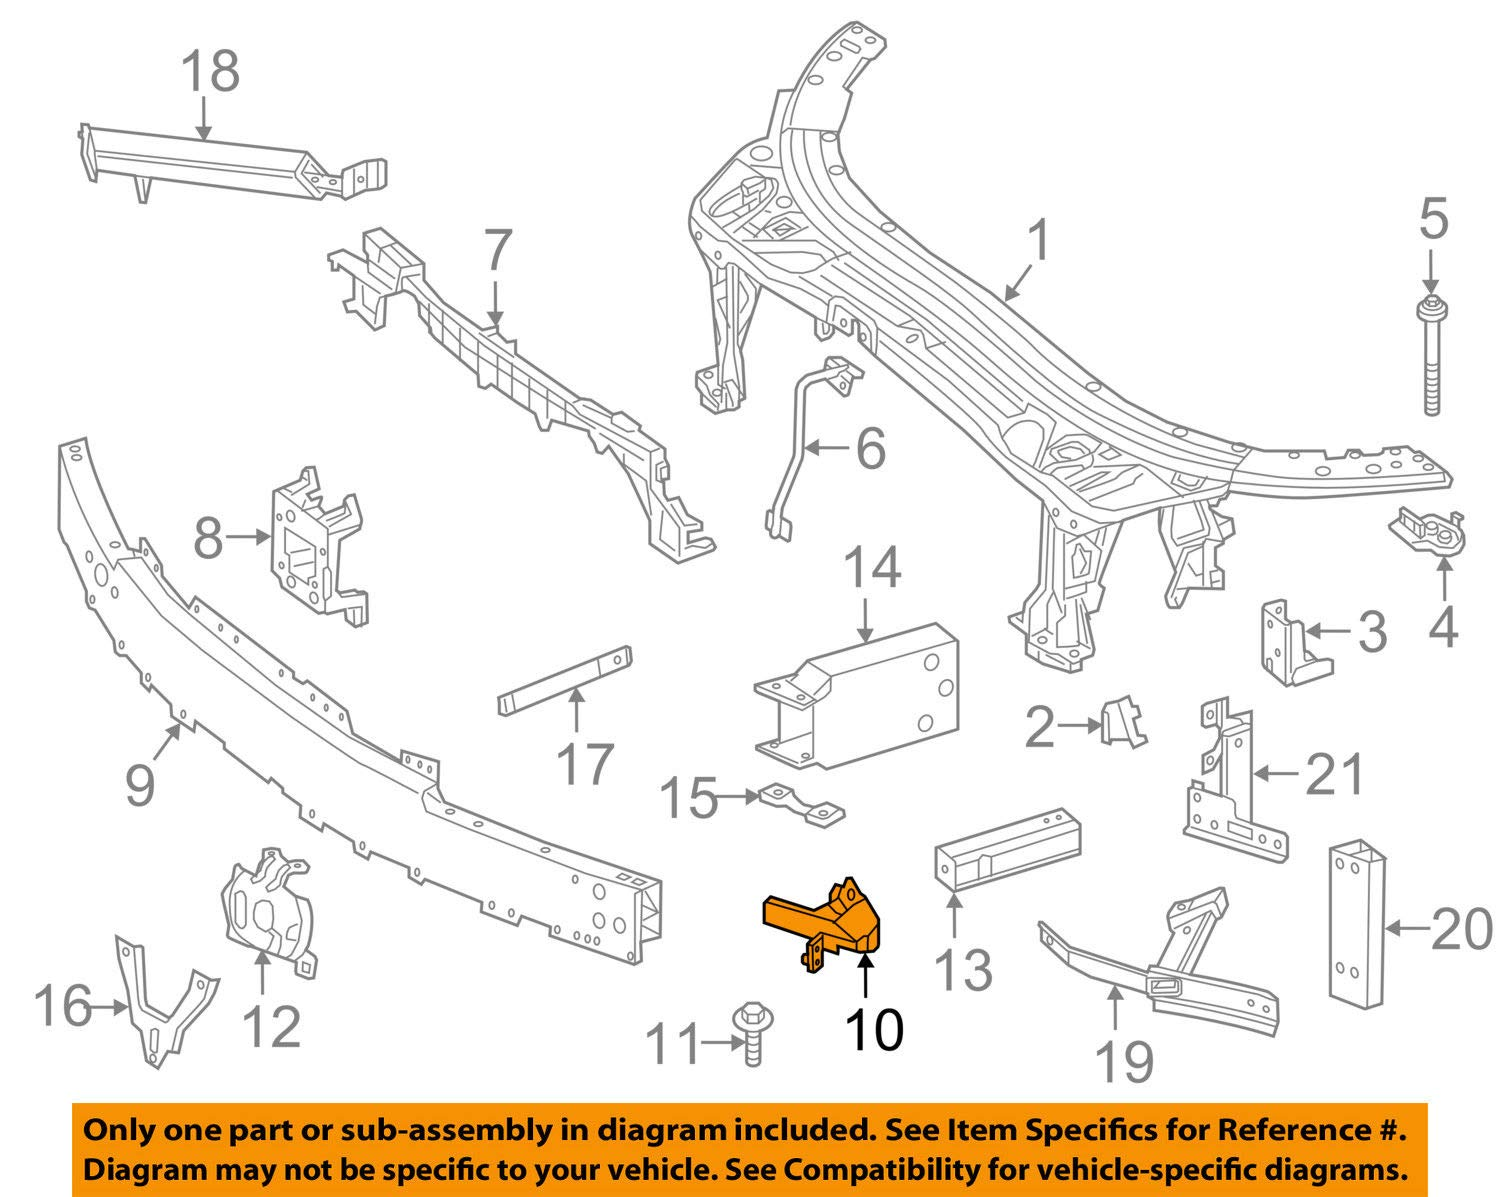 Genuine Mercedes-Benz Impact Bar Side Bracket 205-620-35-01